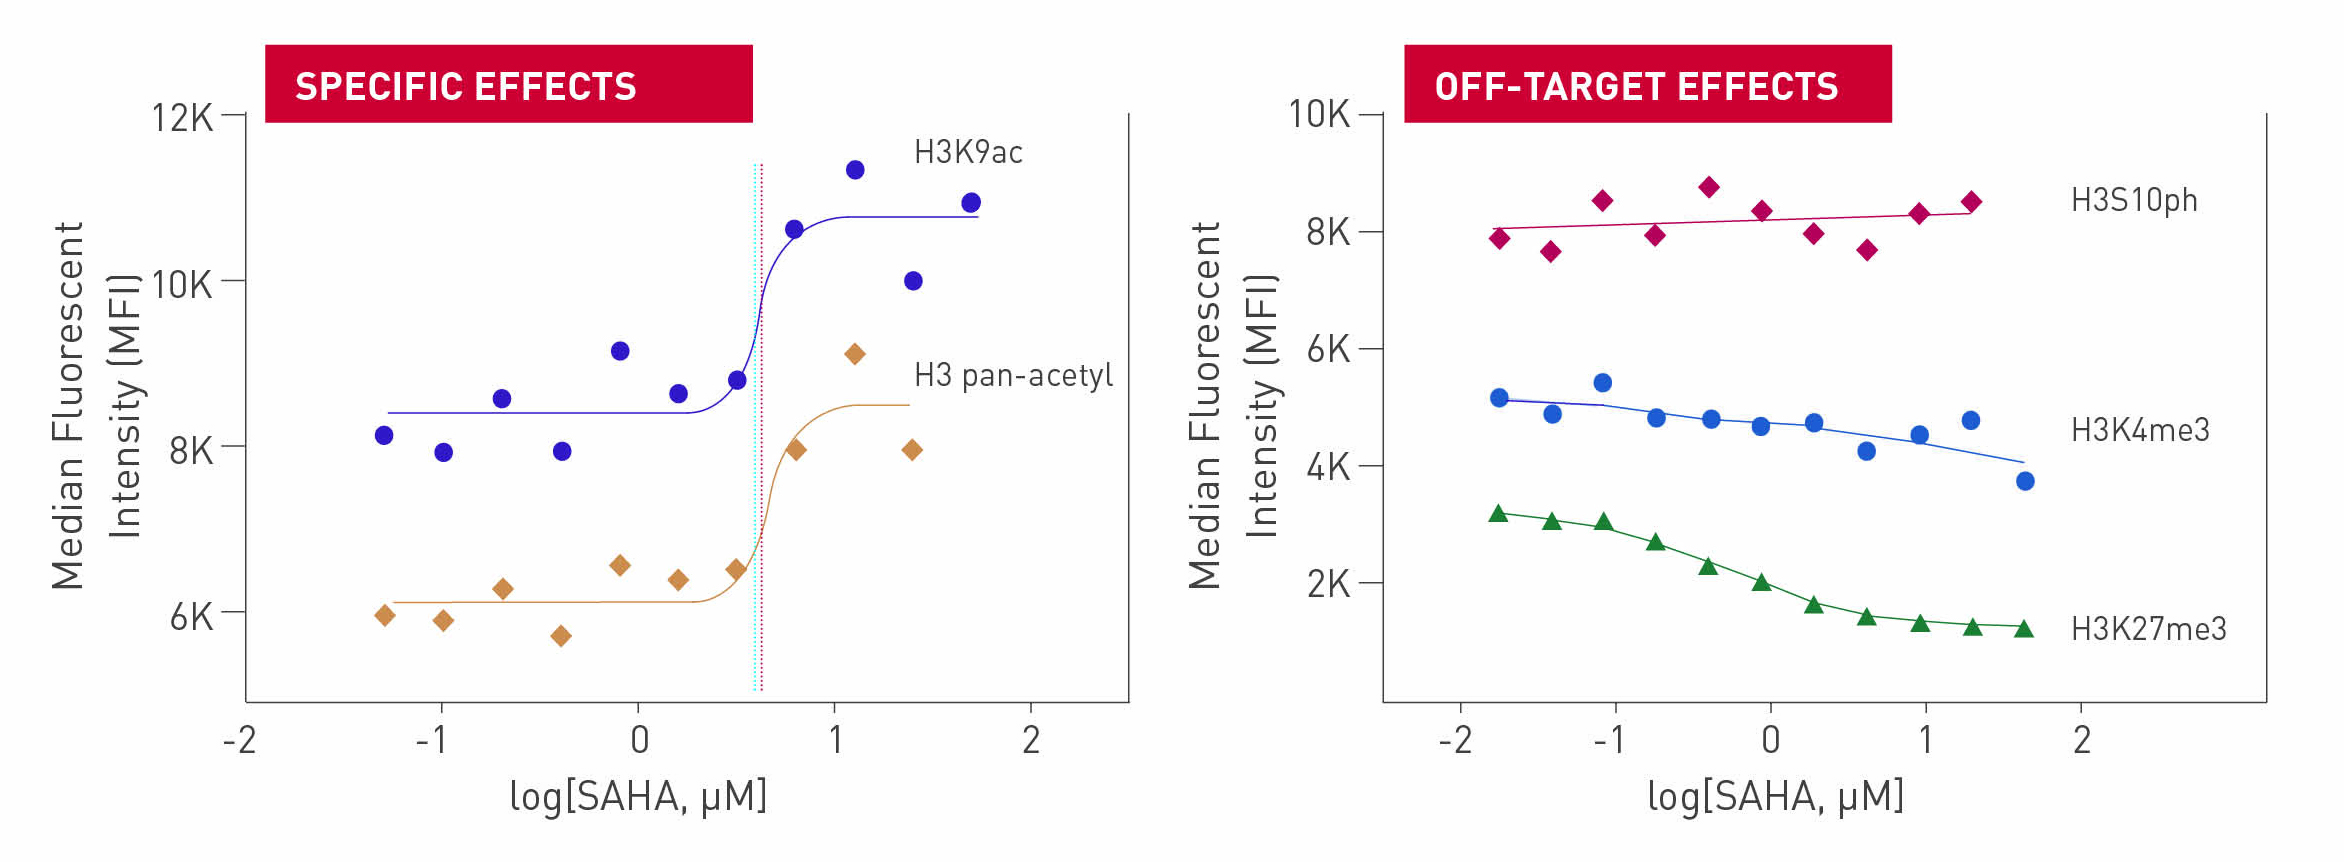 The Histone H3 PTM Multiplex Assay shows increased histone acetylation in response to SAHA-mediated HDAC inhibition